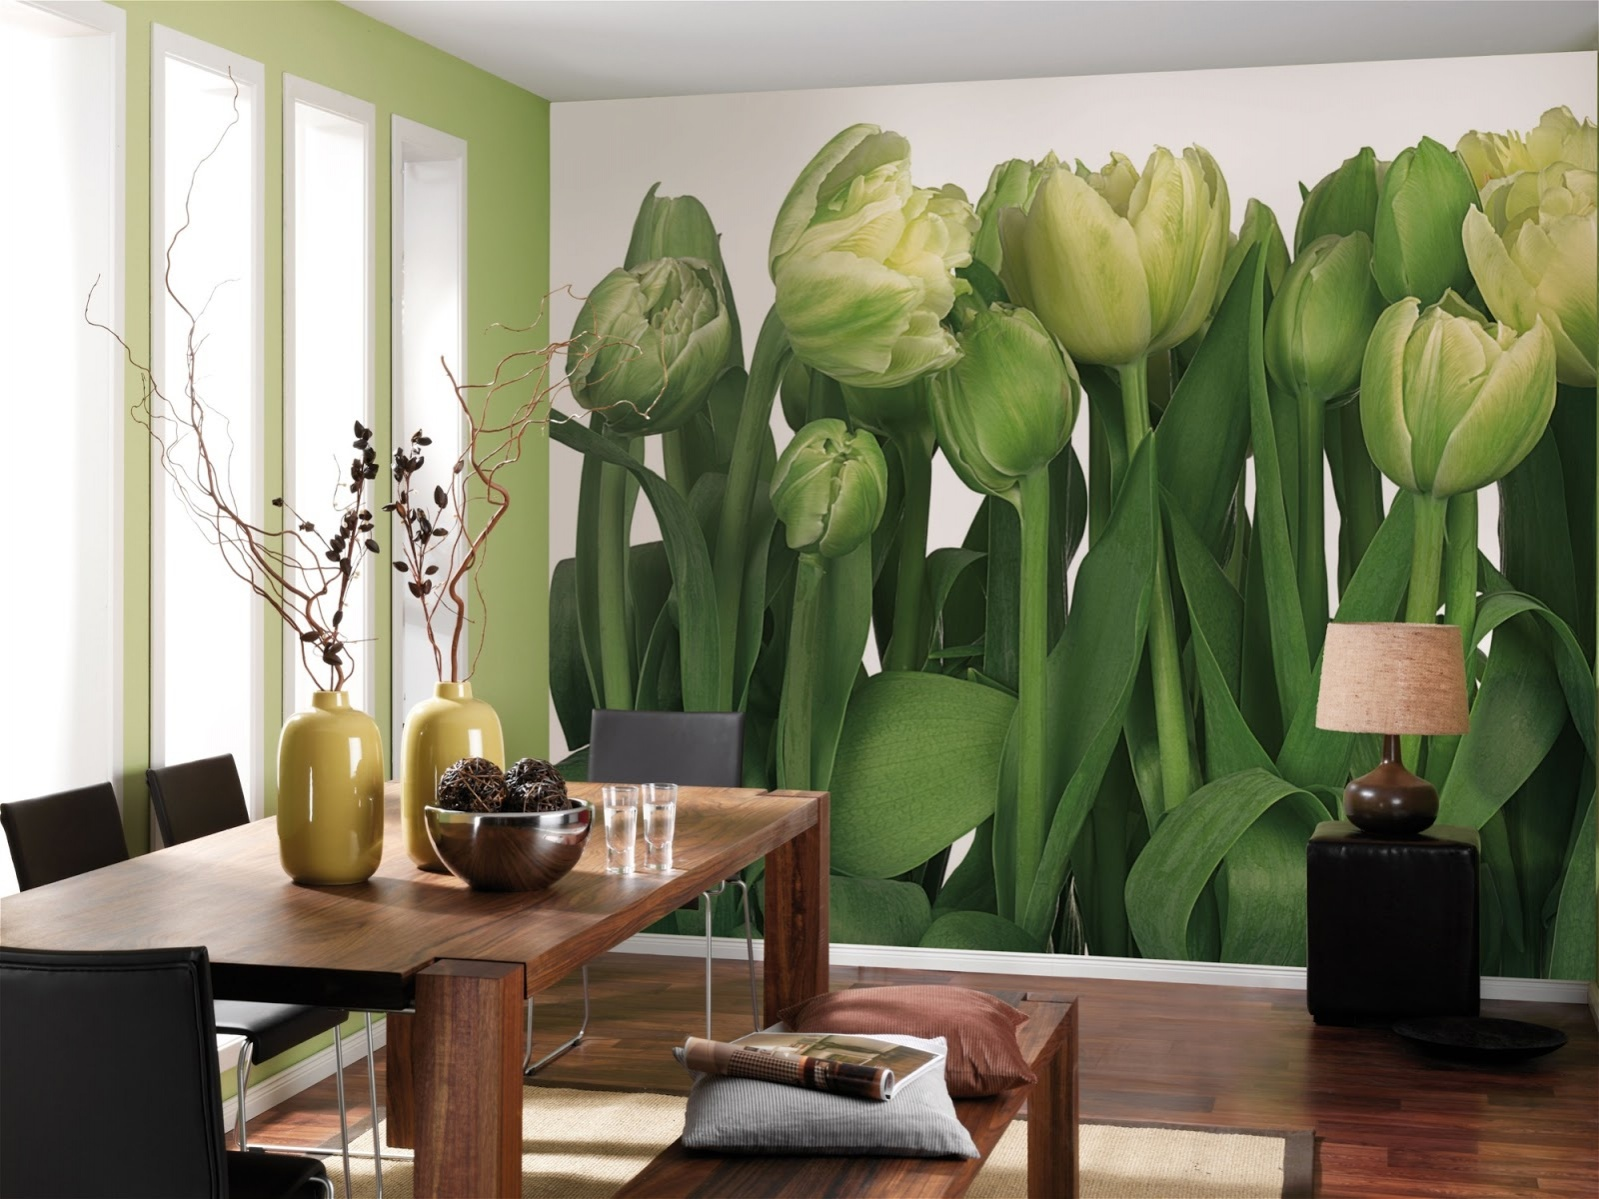 8-900_tulips_interieur_i